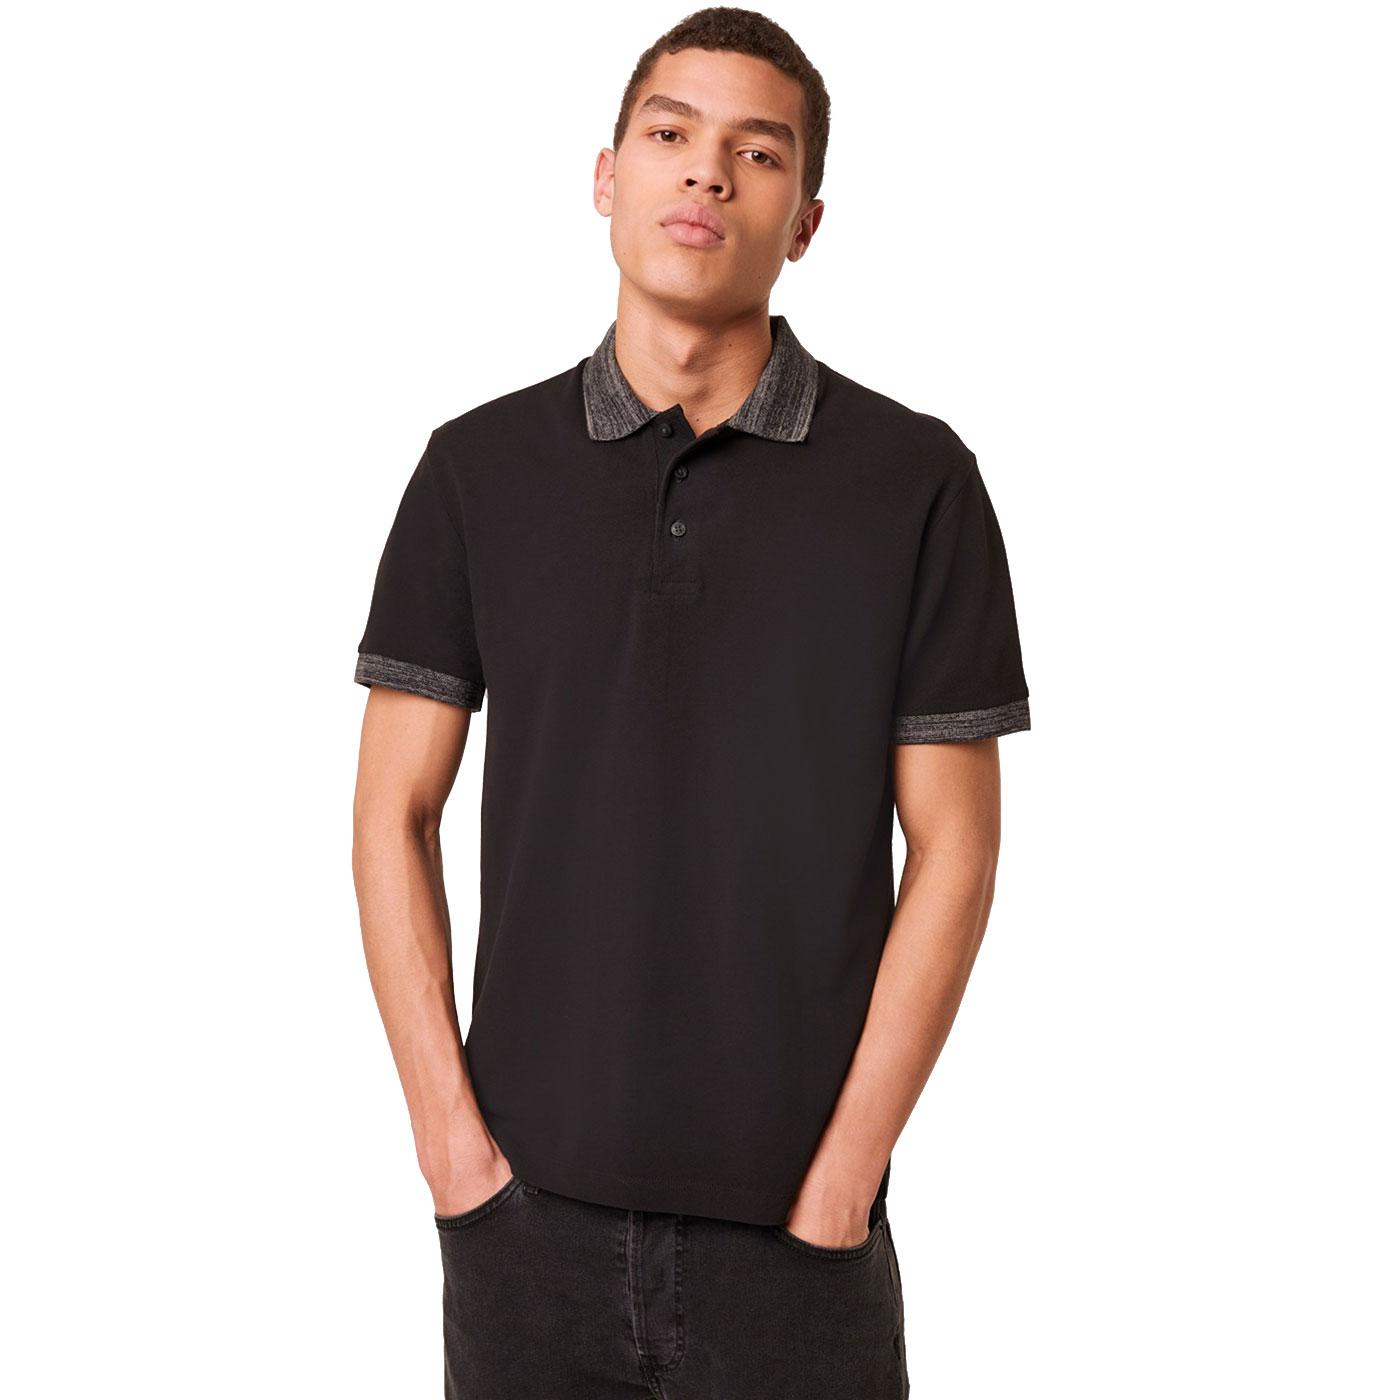 FRENCH CONNECTION Contrast Melange Collar Polo B